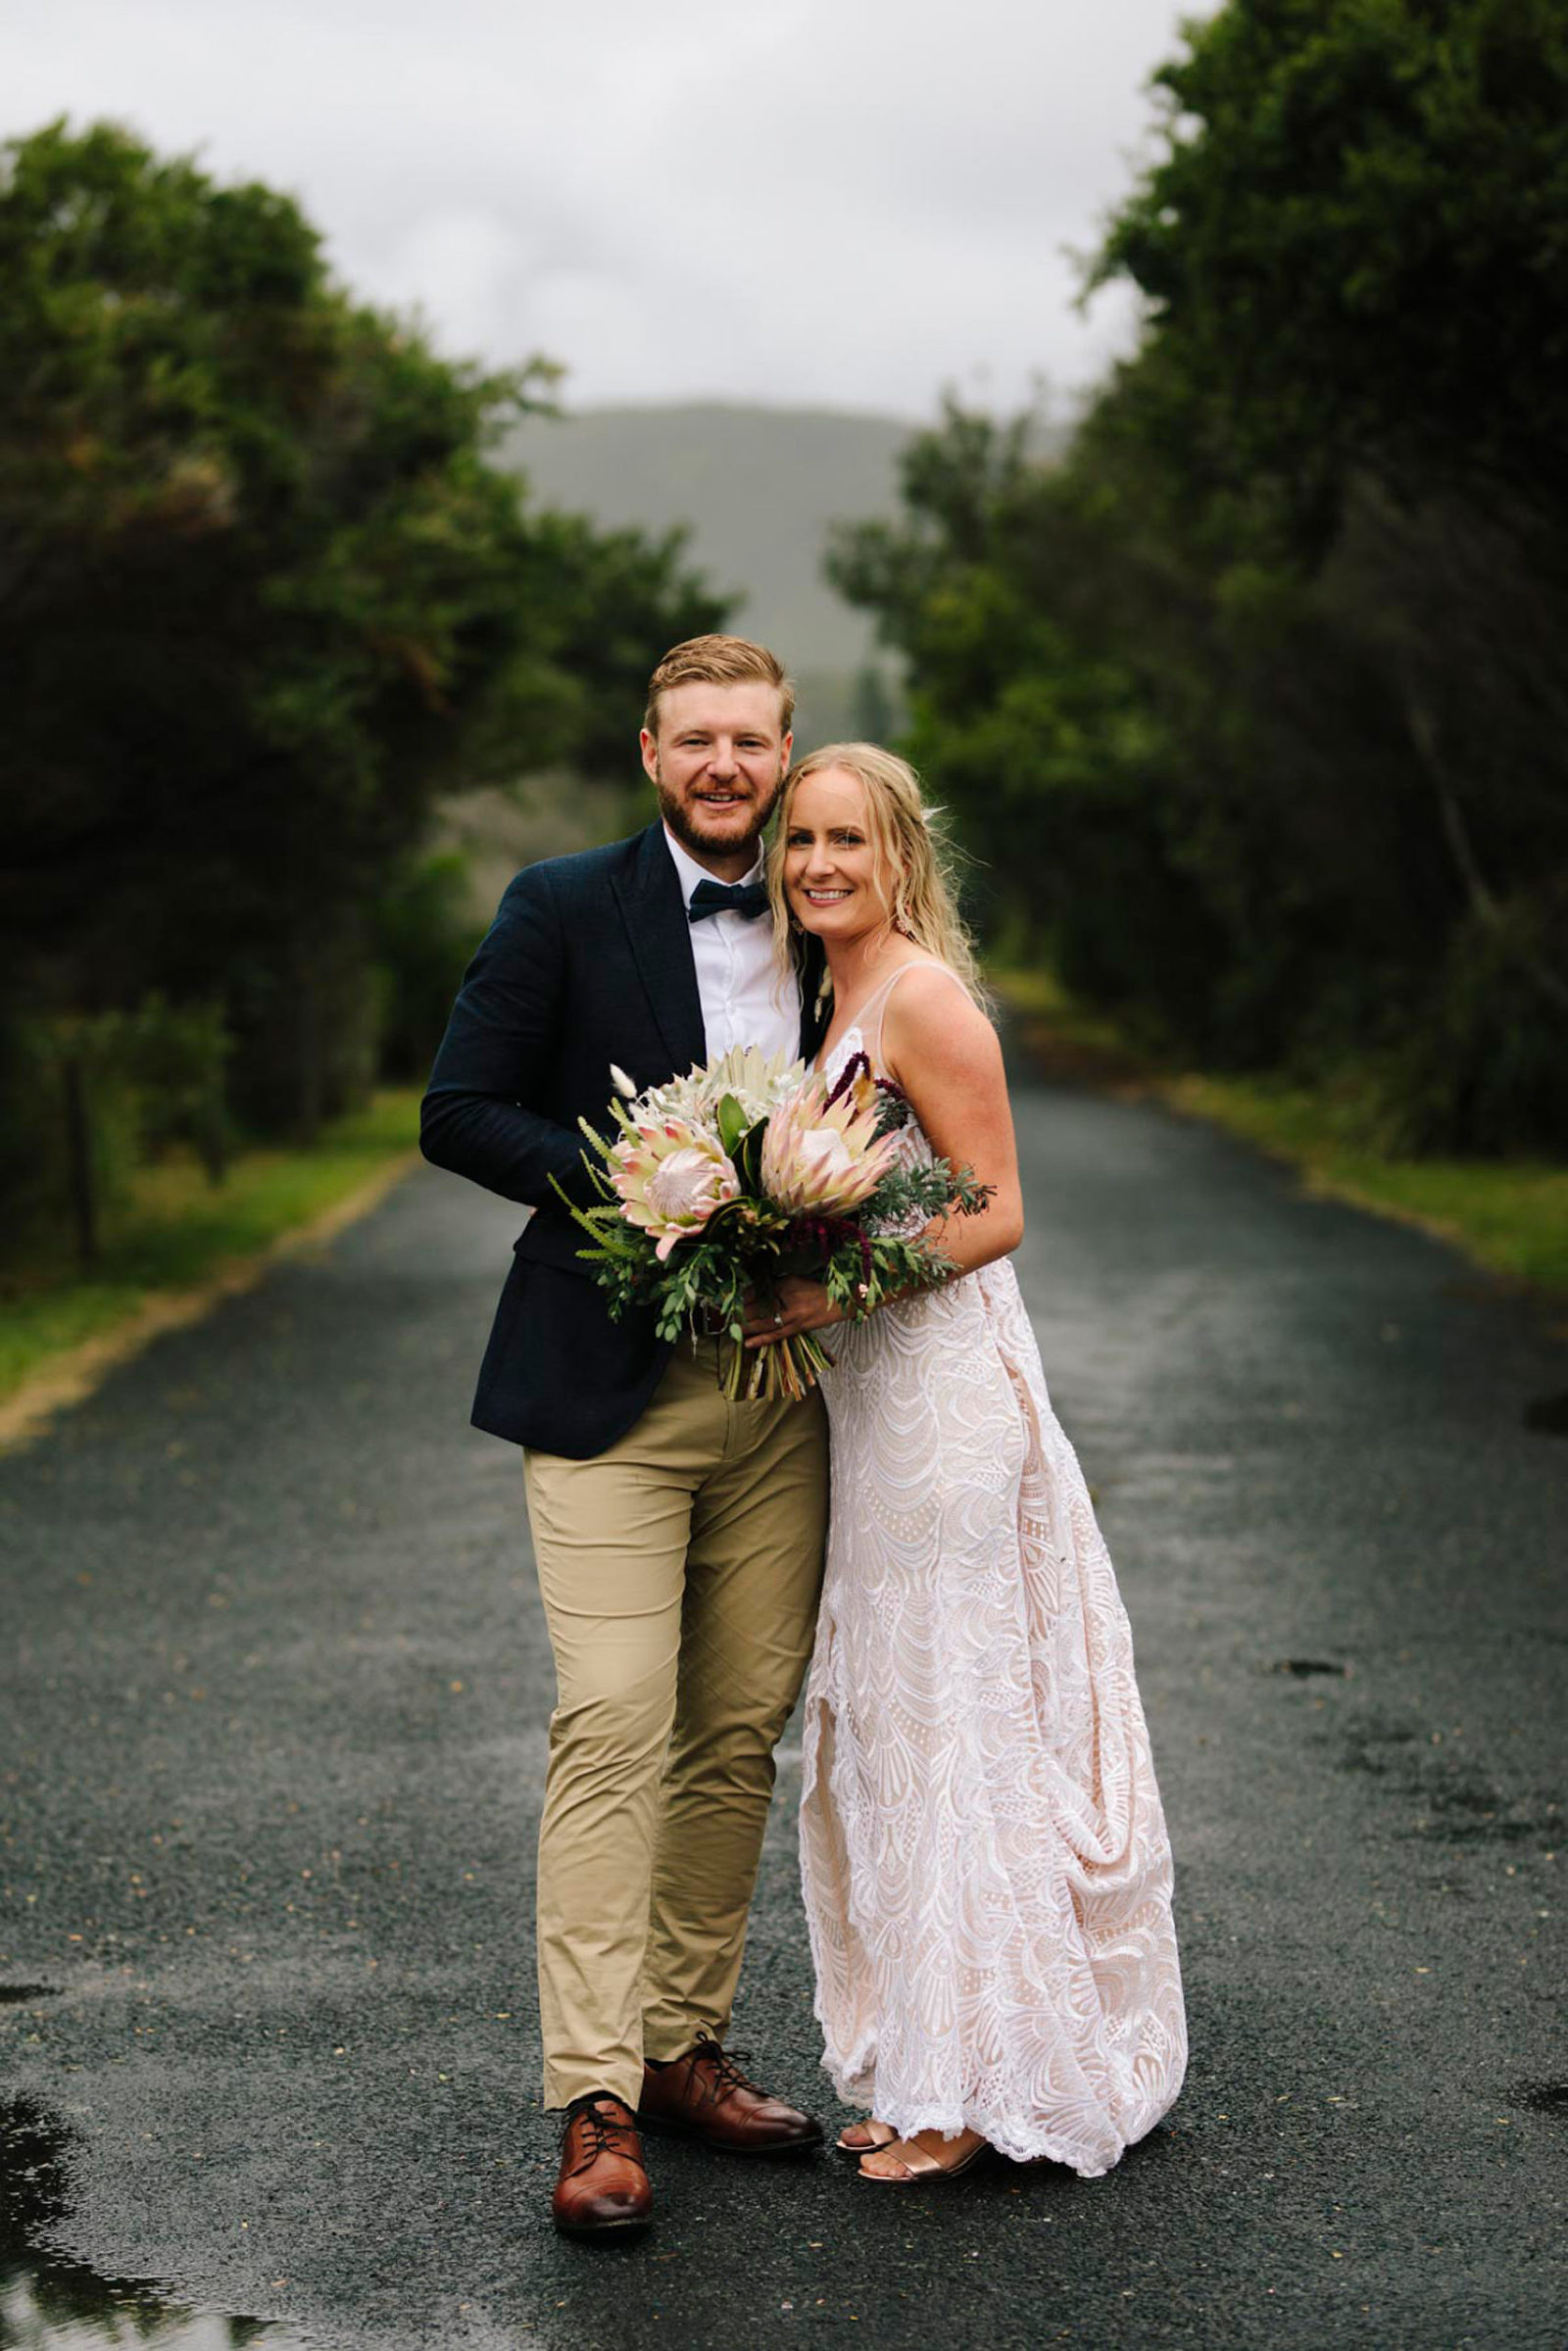 Picture of a bride and groom posing in the middle of a long road.